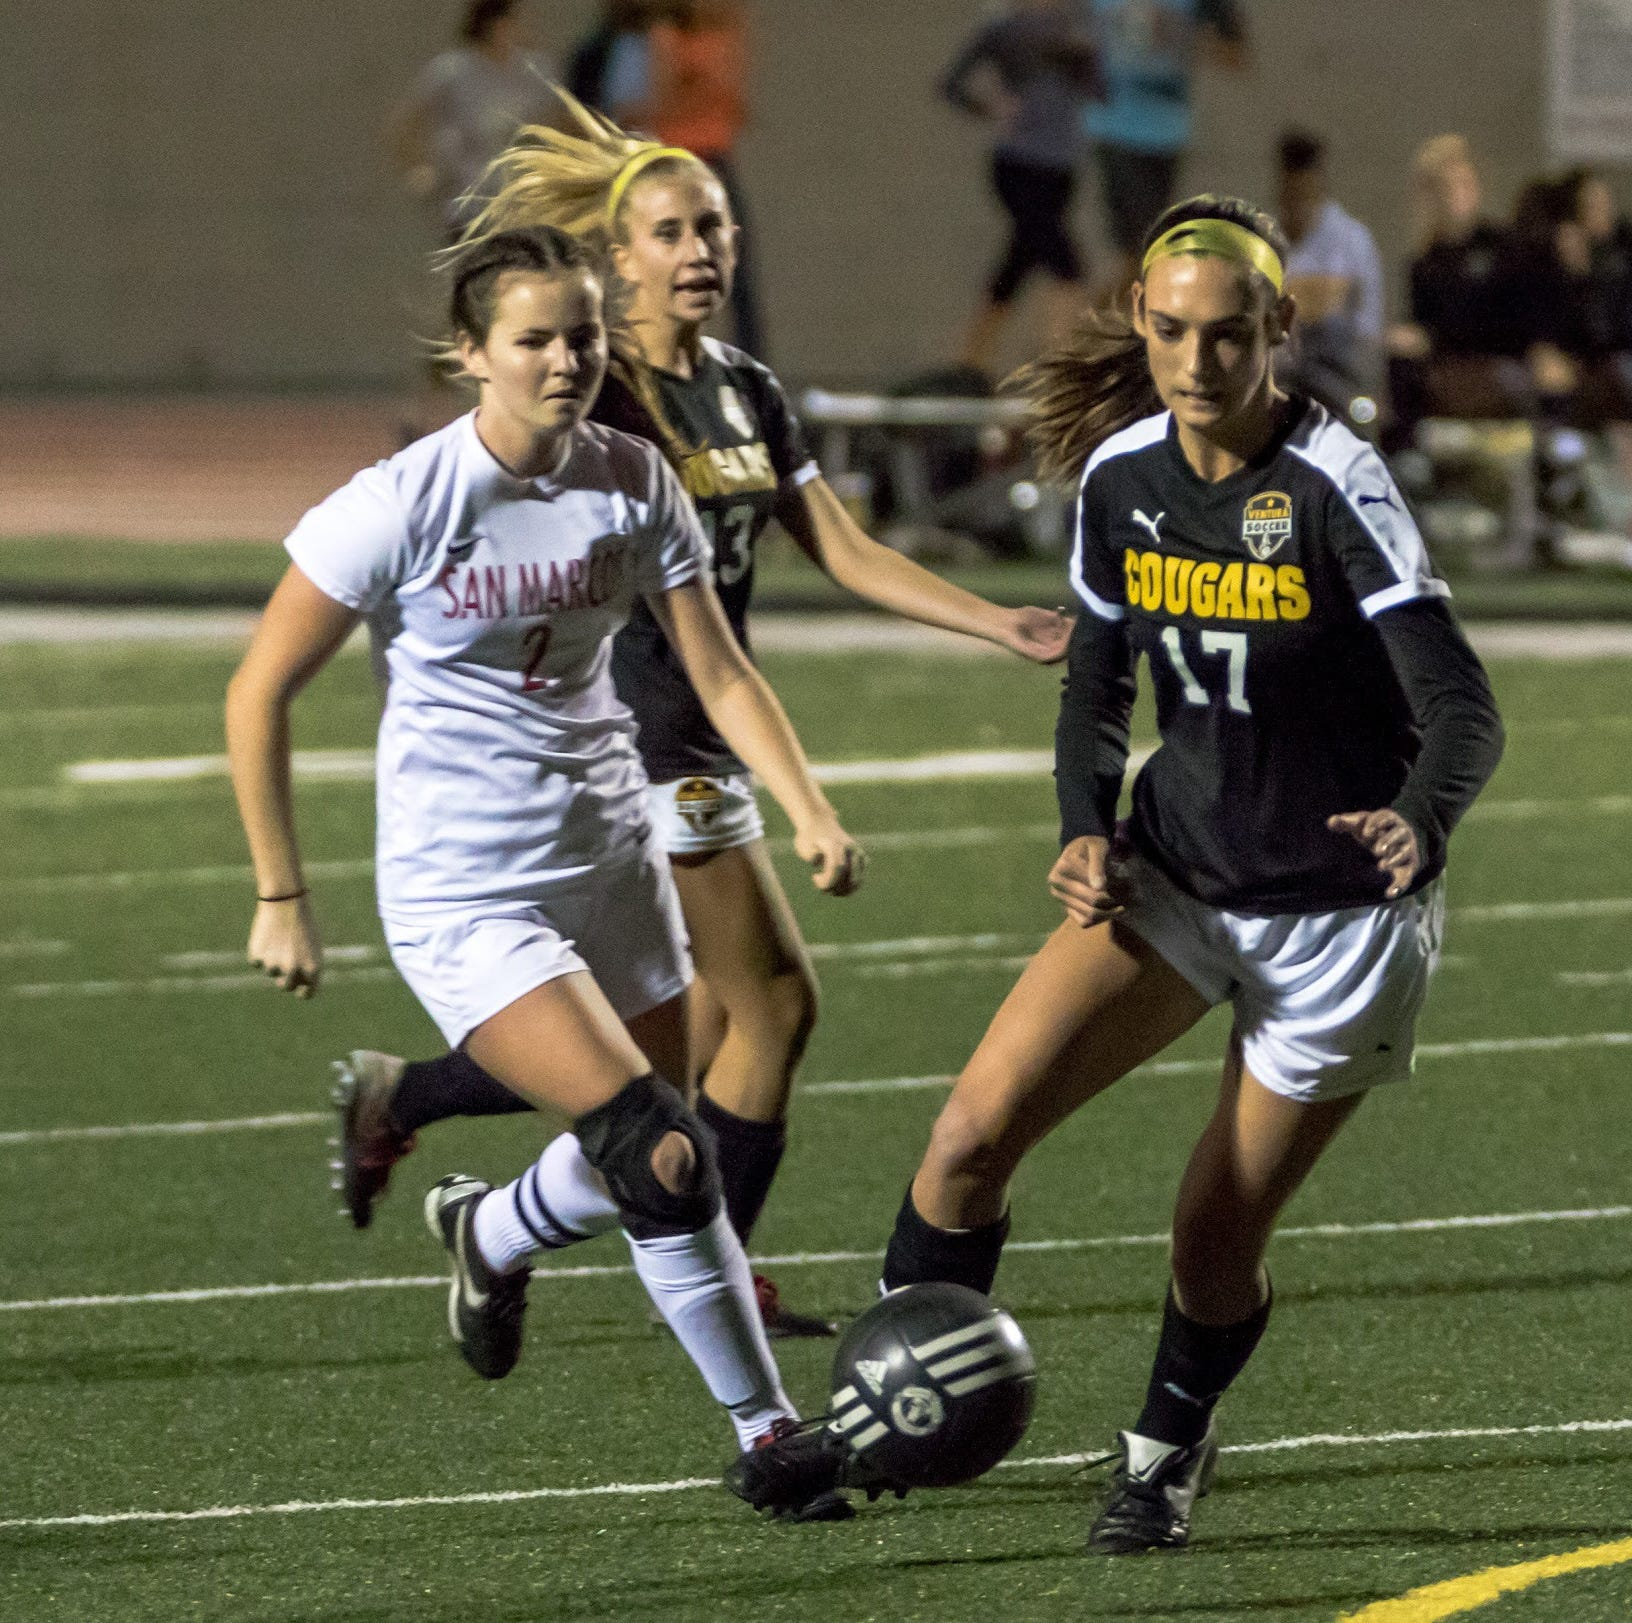 Defending champions Ventura, Fillmore looking likely to continue girls soccer runs